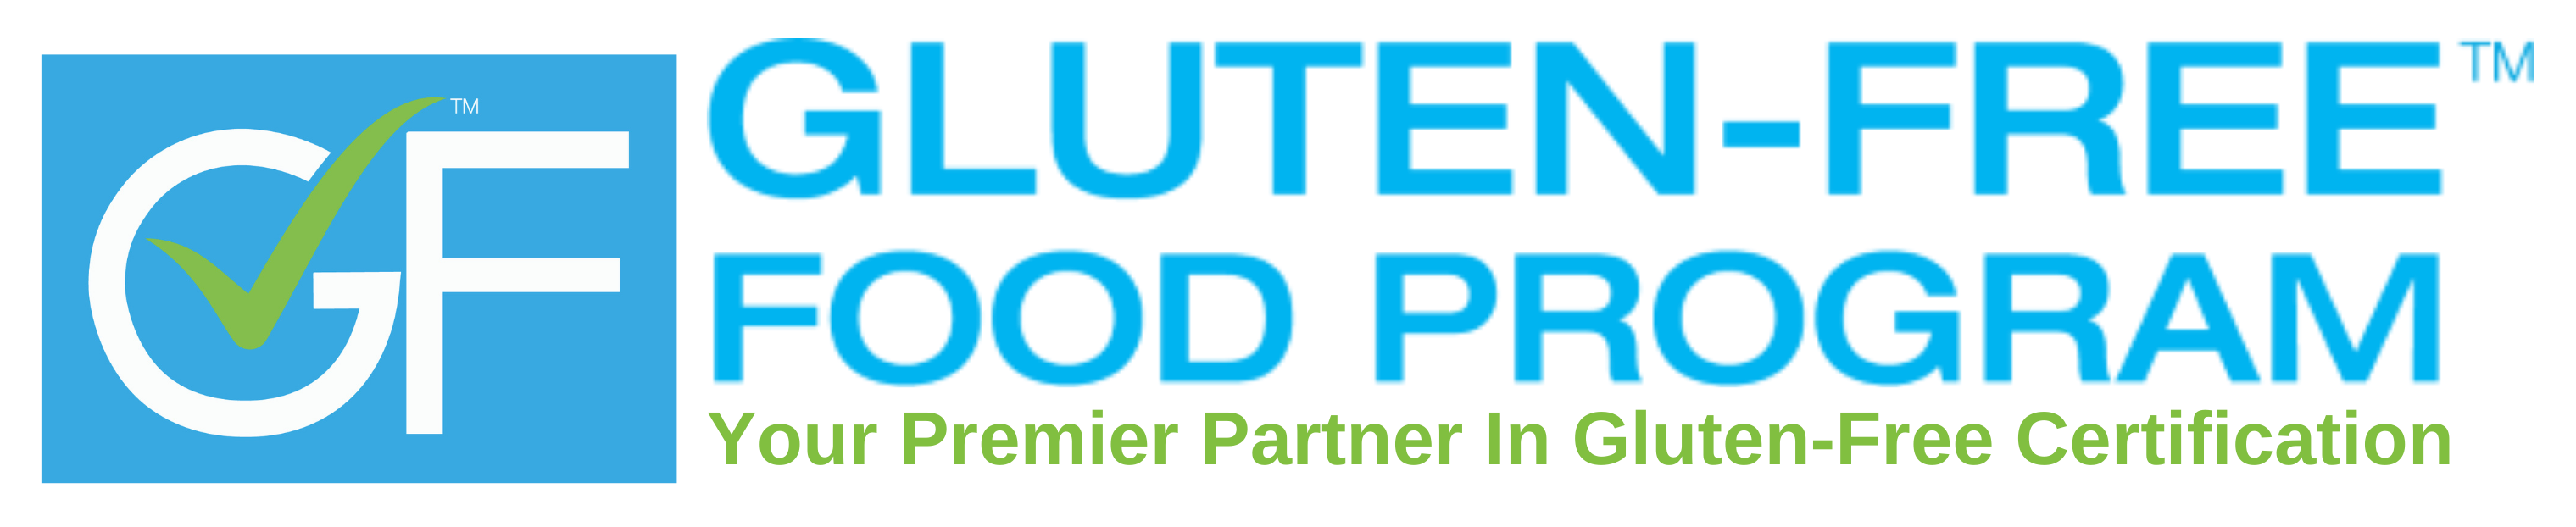 Gluten-Free Food Program: Your premier patner in gluten-free certification